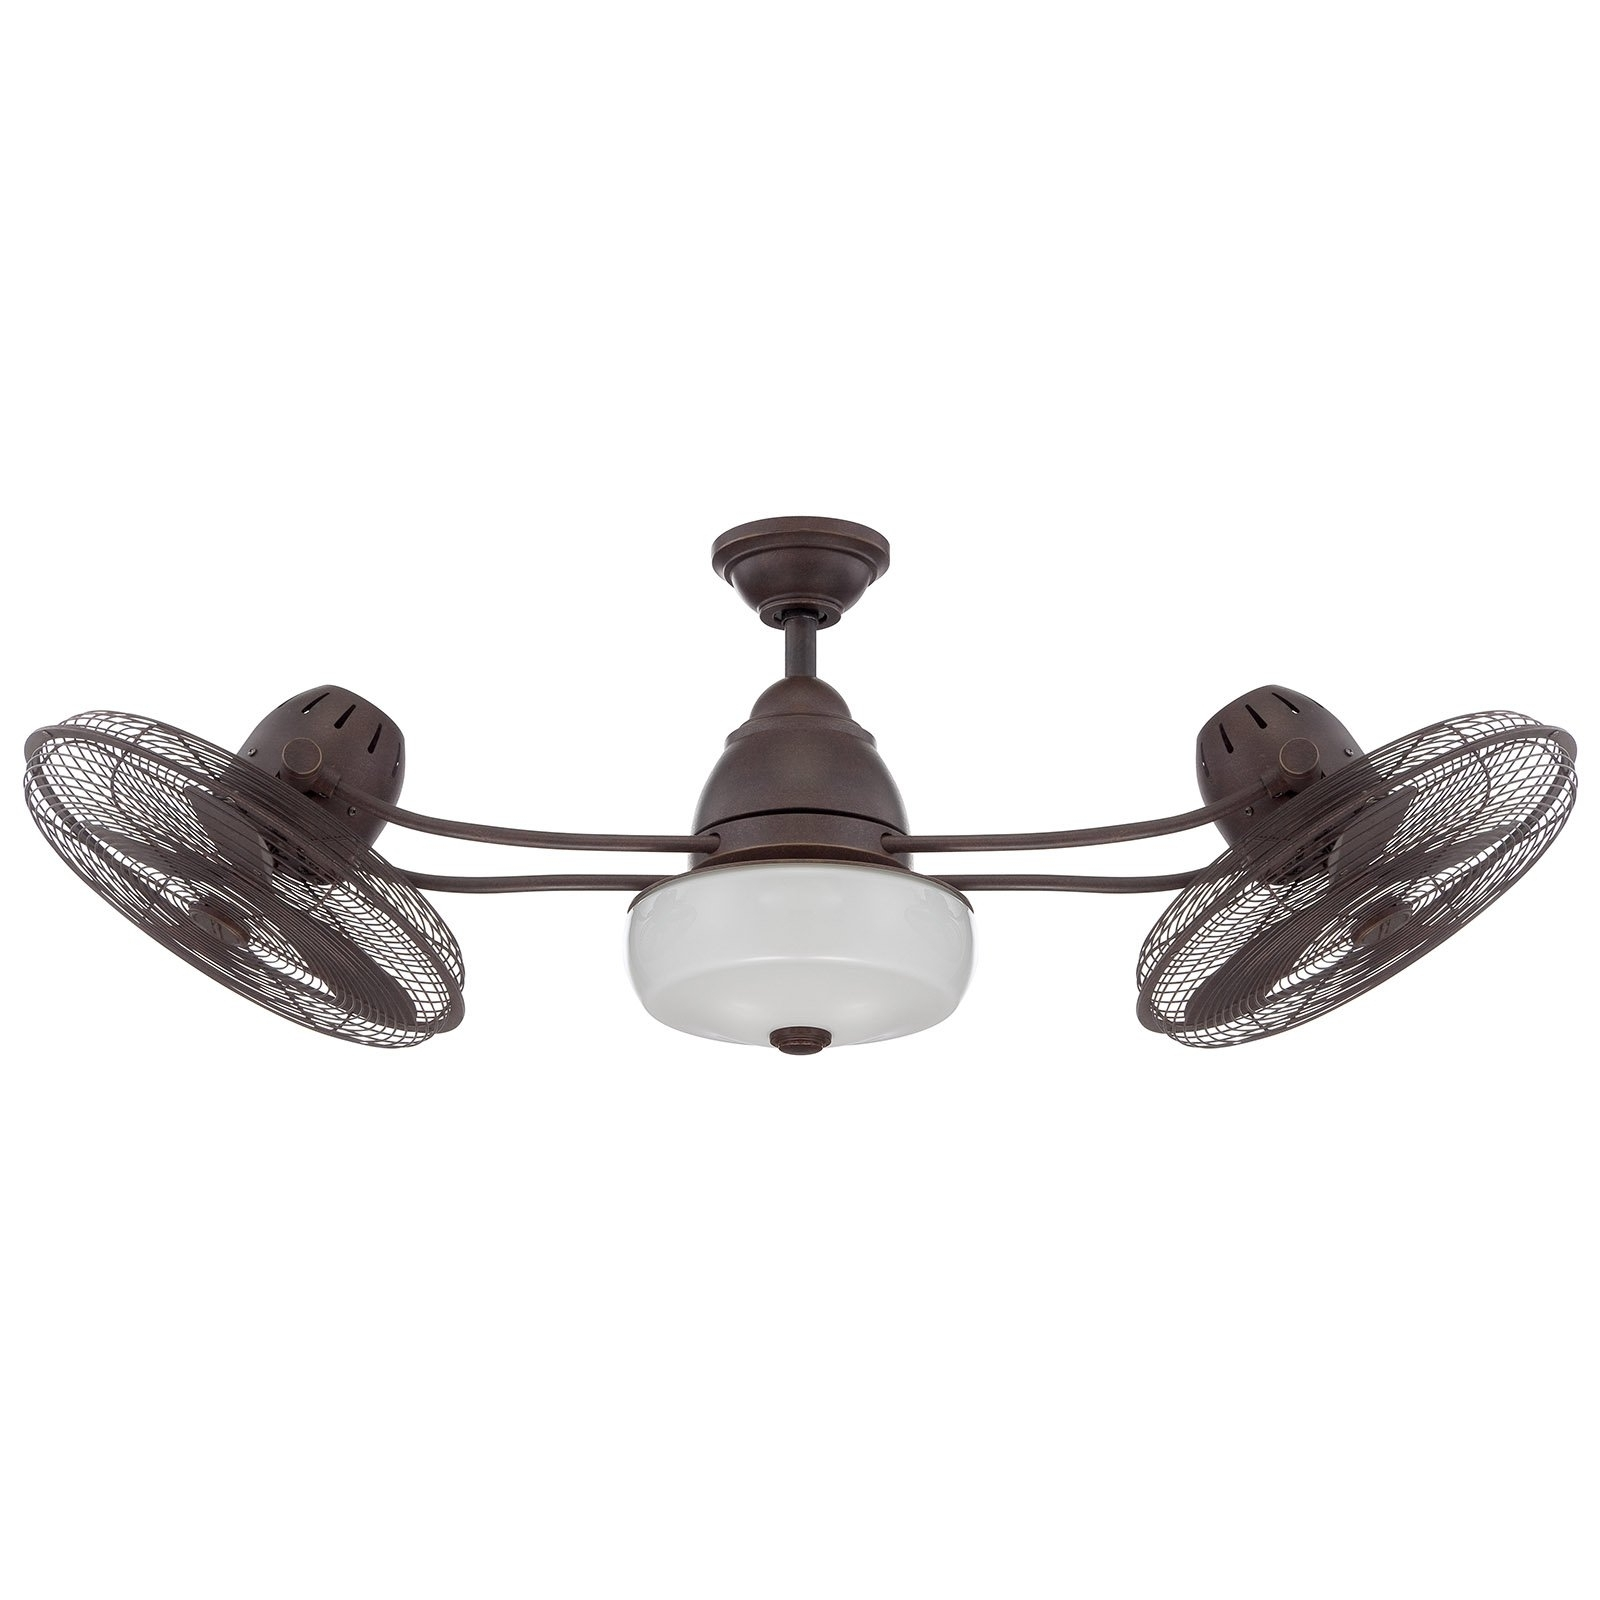 48 Outdoor Ceiling Fans With Light Kit Regarding Most Recent Craftmade Bellows Ii Bw248ag6 48 In (View 10 of 20)